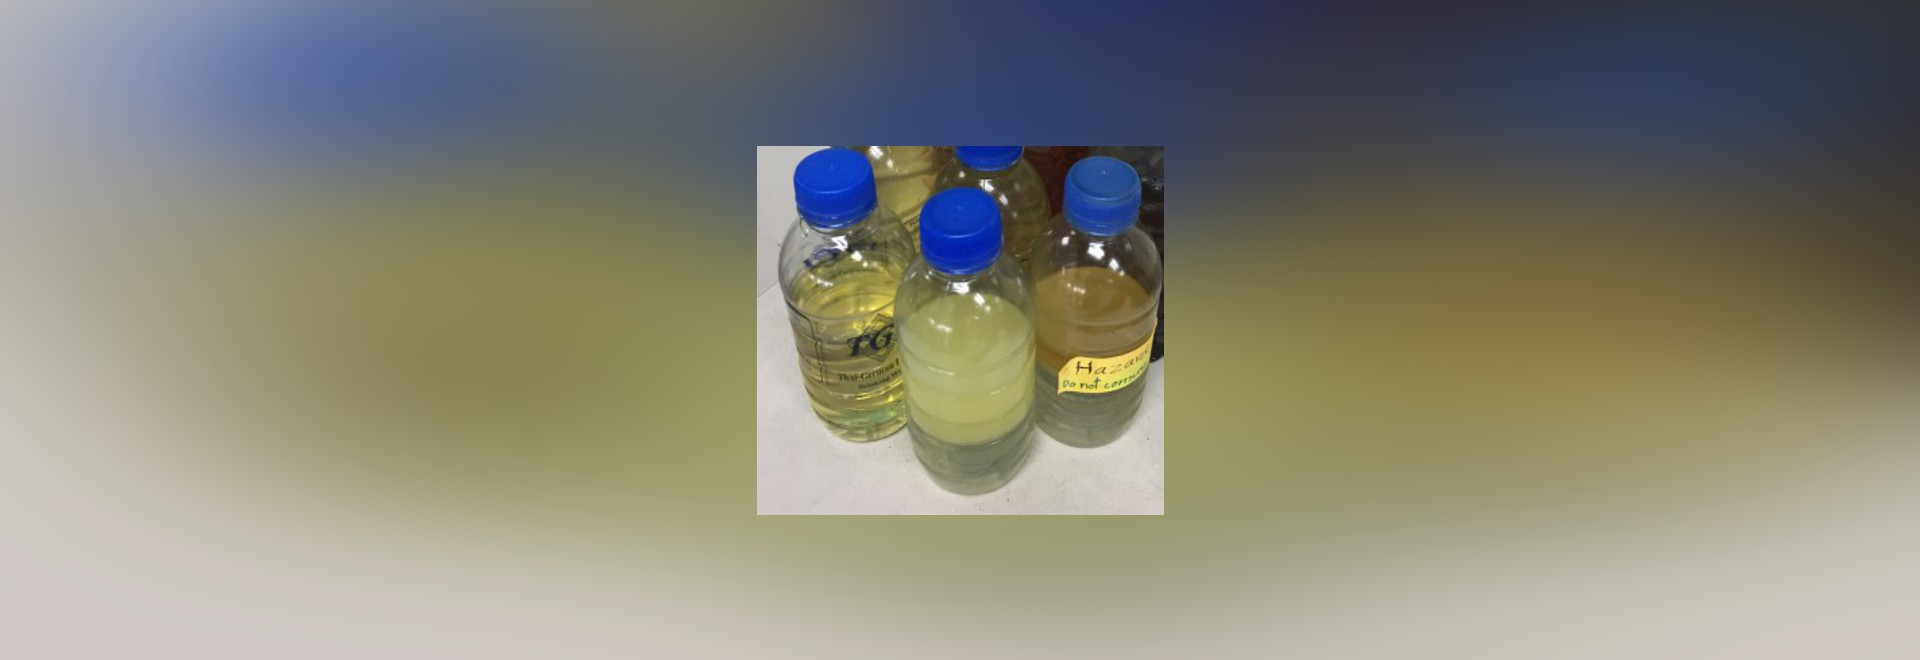 When water dissolves in oil, it tends to get cloudy, as seen here. Humidity levels greater than 50% can cause breakdown of oil and its additives.